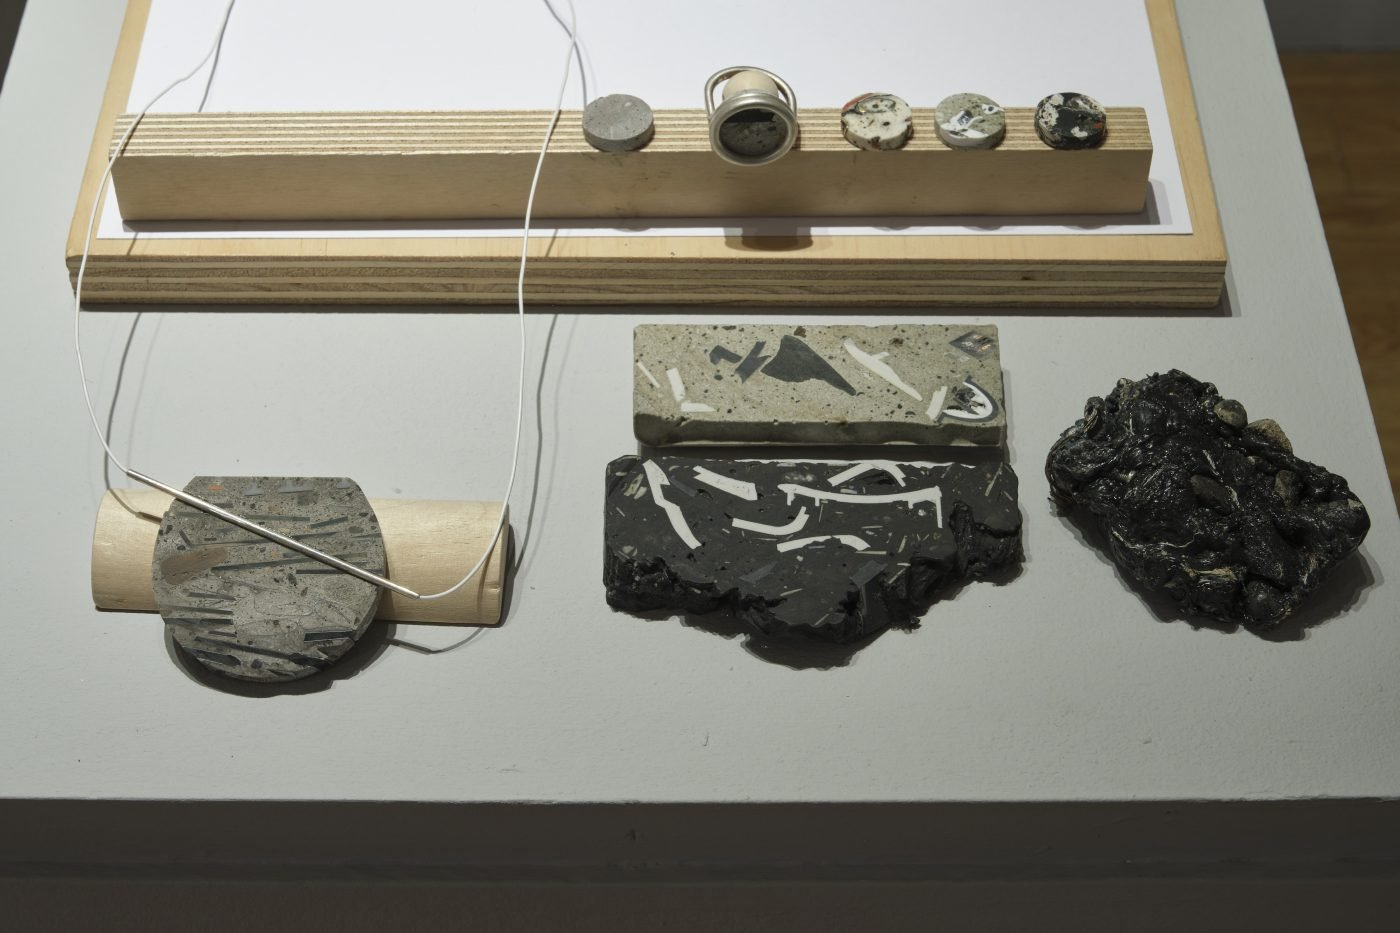 Cross sections of samples of plastic composite material, with small pieces made into rings and a necklace using silver elements